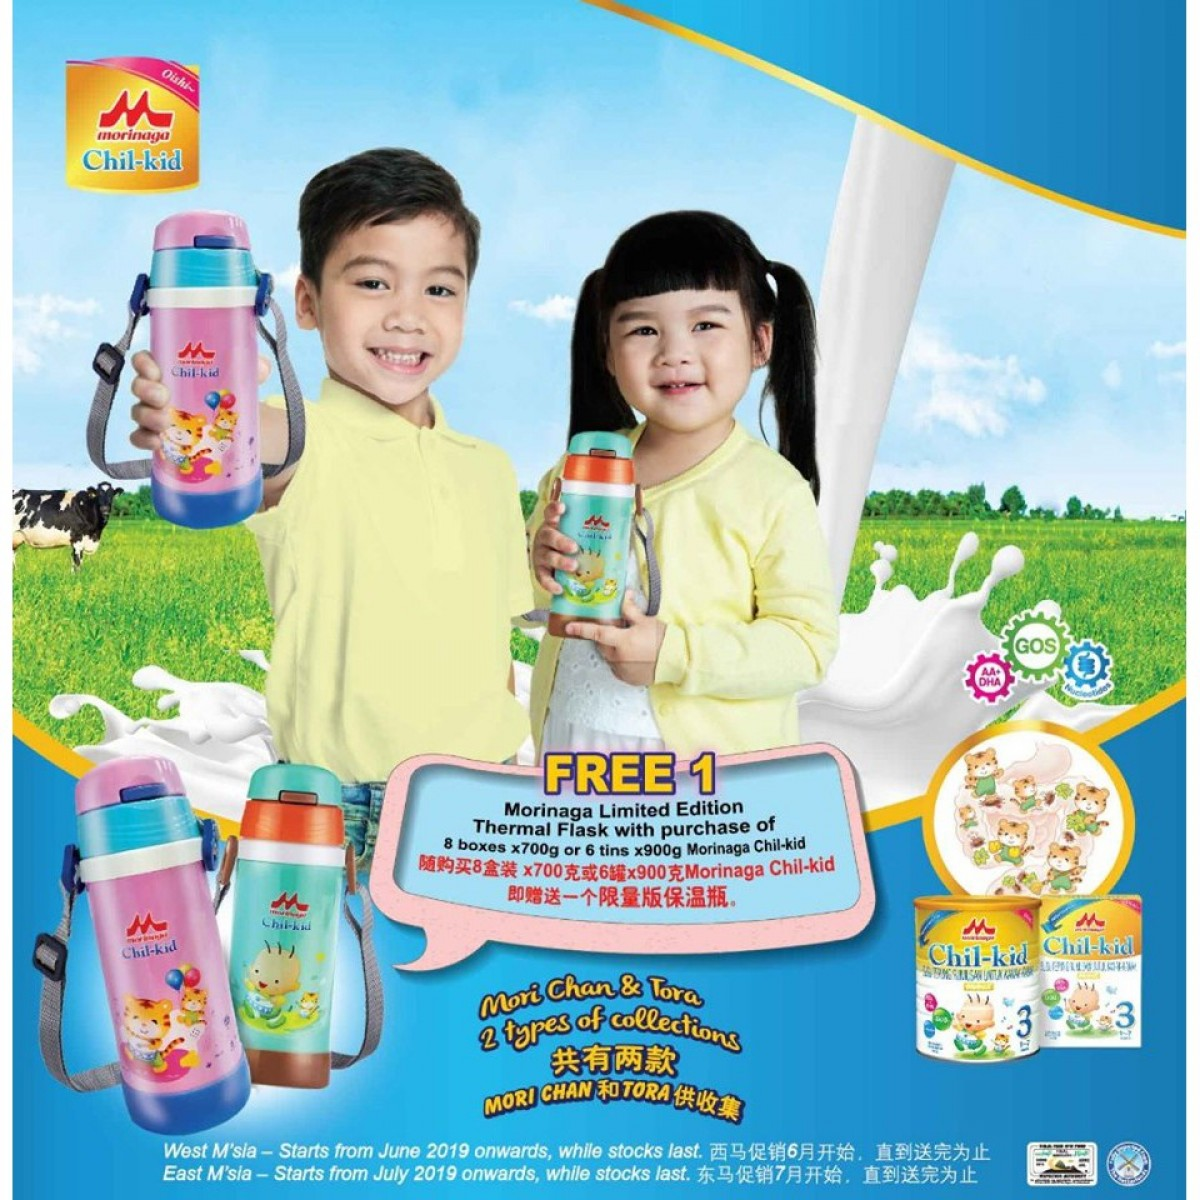 8 boxes FREE TUMBLER - Morinaga Chil-Kid Step 3 700g Improved Formula - Exclude from FREE SHIPPING